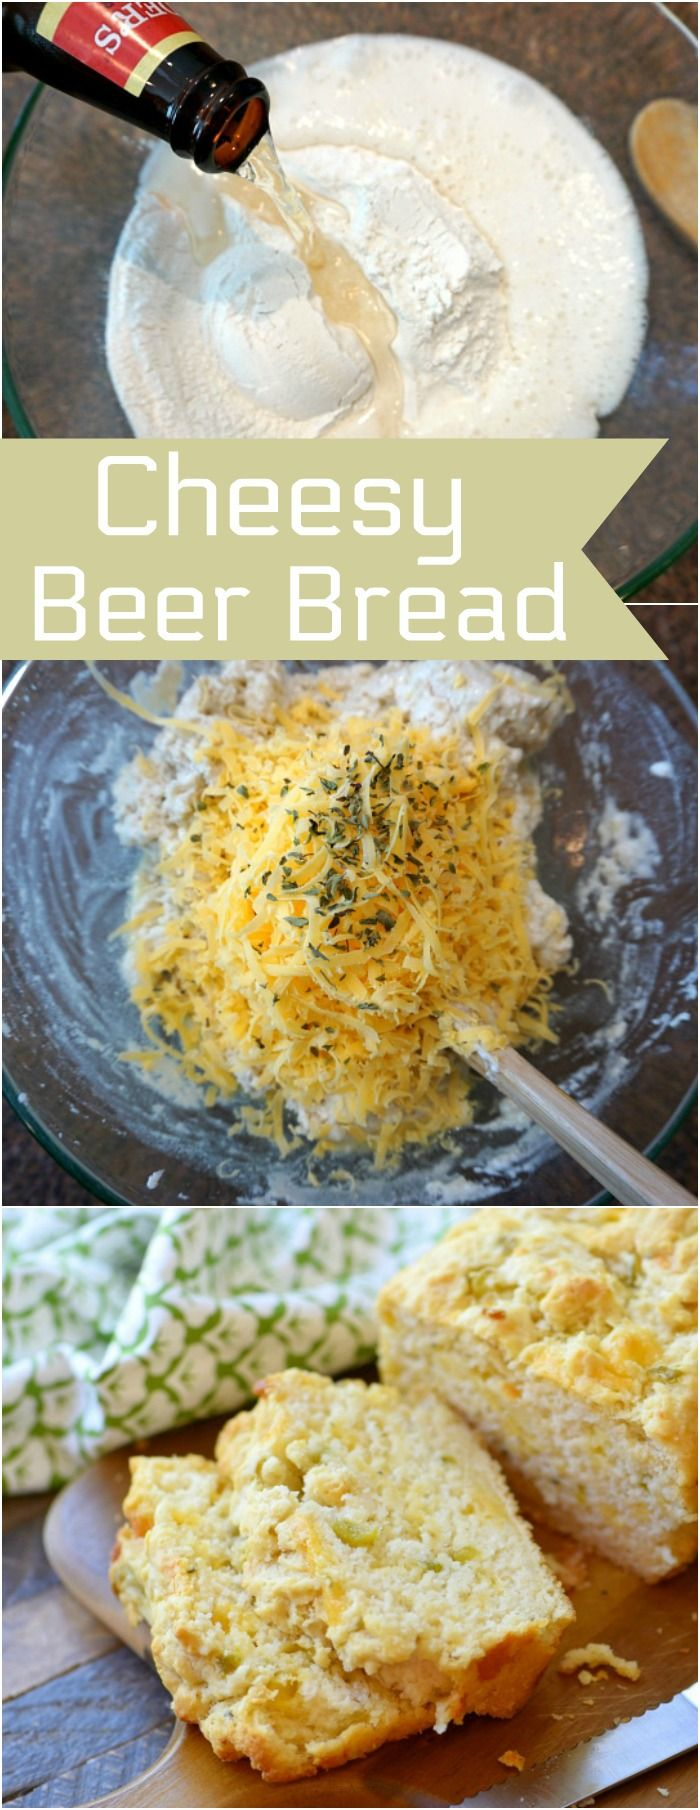 The Best beer bread recipe you'll ever make with just 3 ingredients! Add cheddar cheese and chiles and it is out of this world and so easy to make.